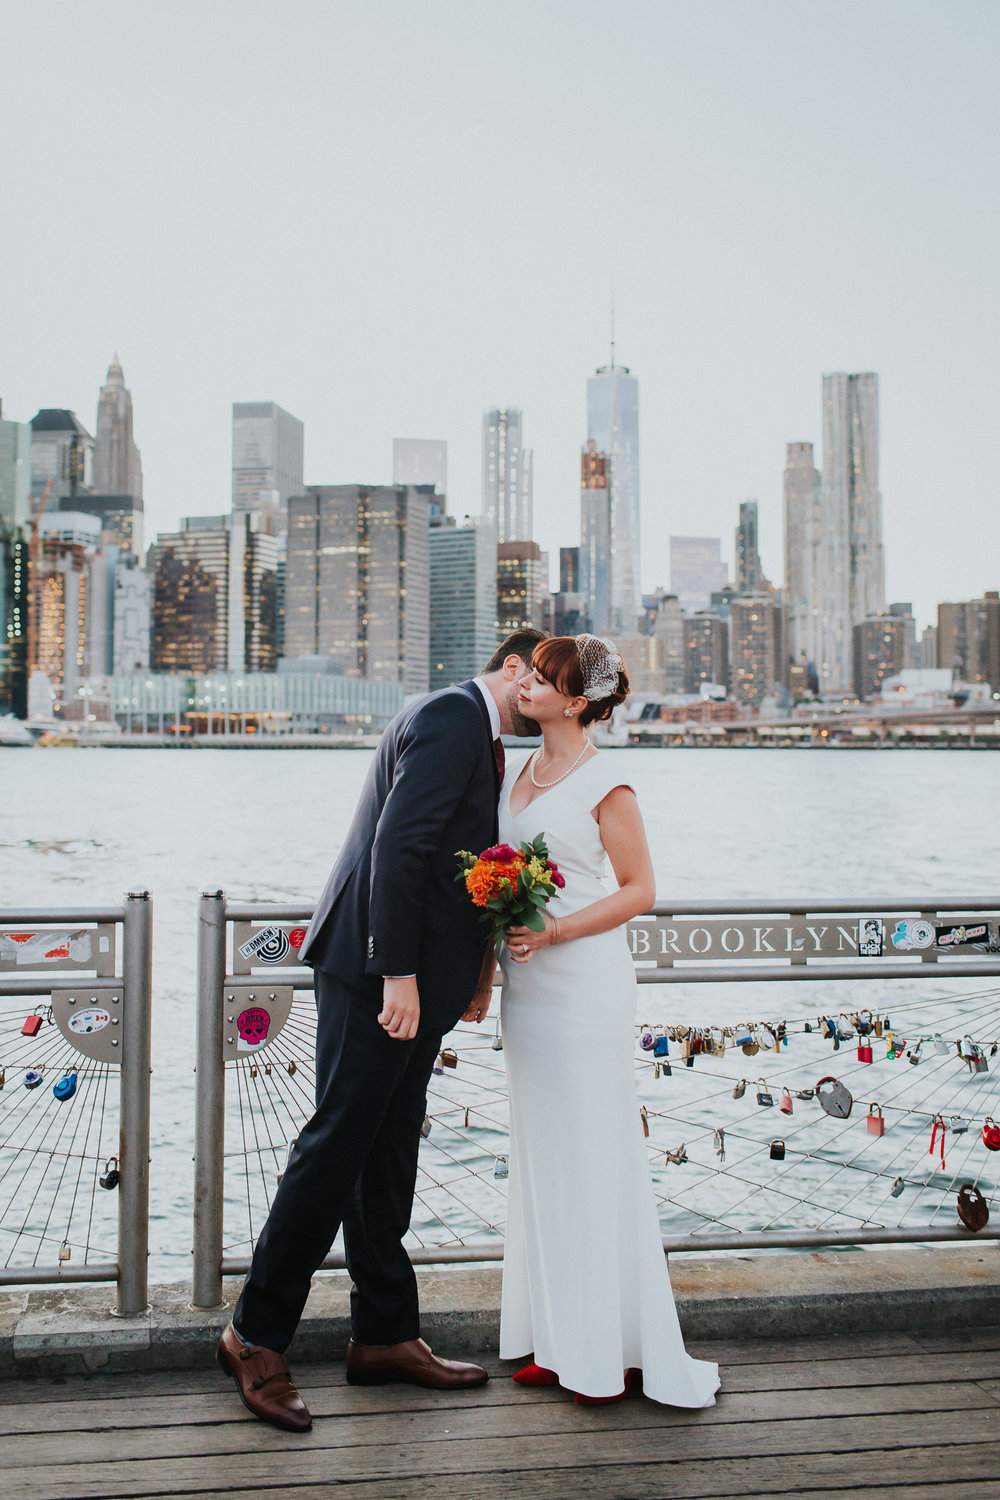 Dumbo-Brooklyn-Bridge-Park-NYC-Elopement-Documentary-Photographer-64.jpg